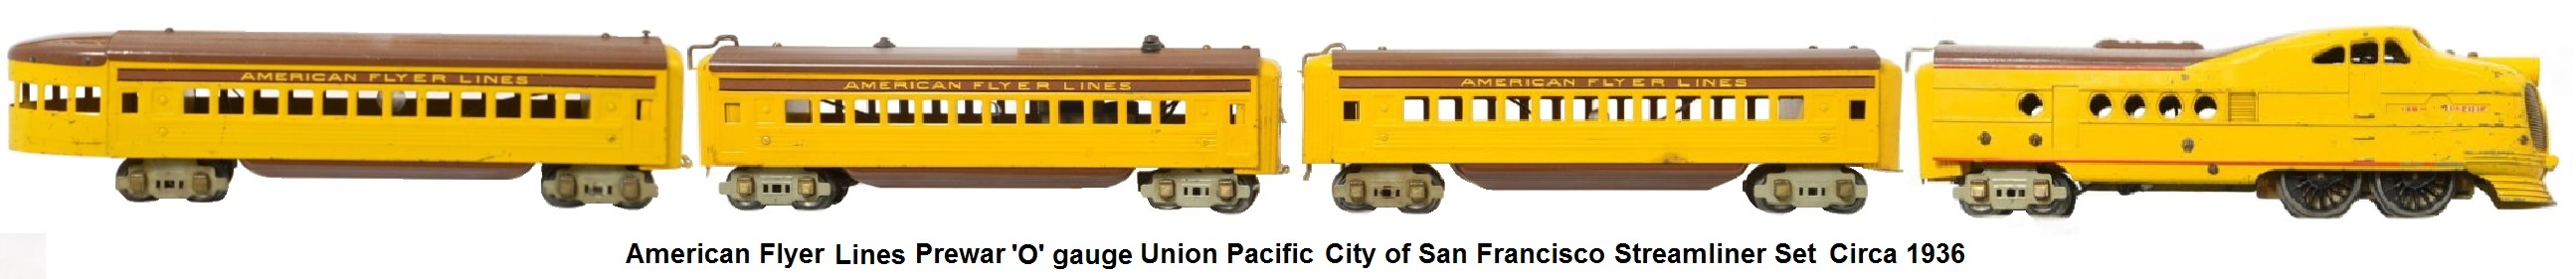 American Flyer 'O' gauge Union Pacific streamliner set